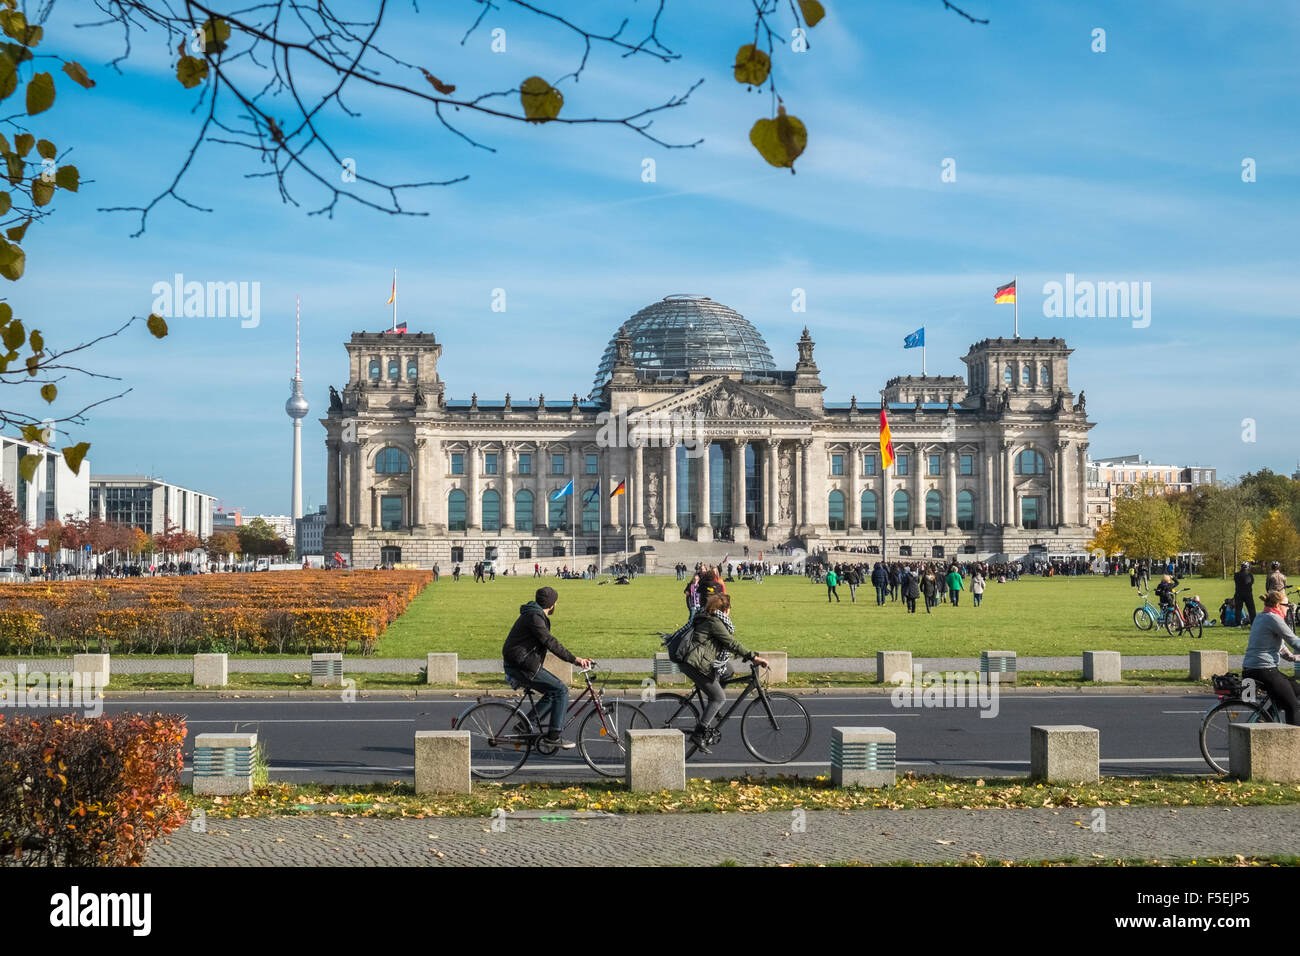 German Reichstag building and dome, with tourists in foreground, Berlin, Germany, Europe - Stock Image